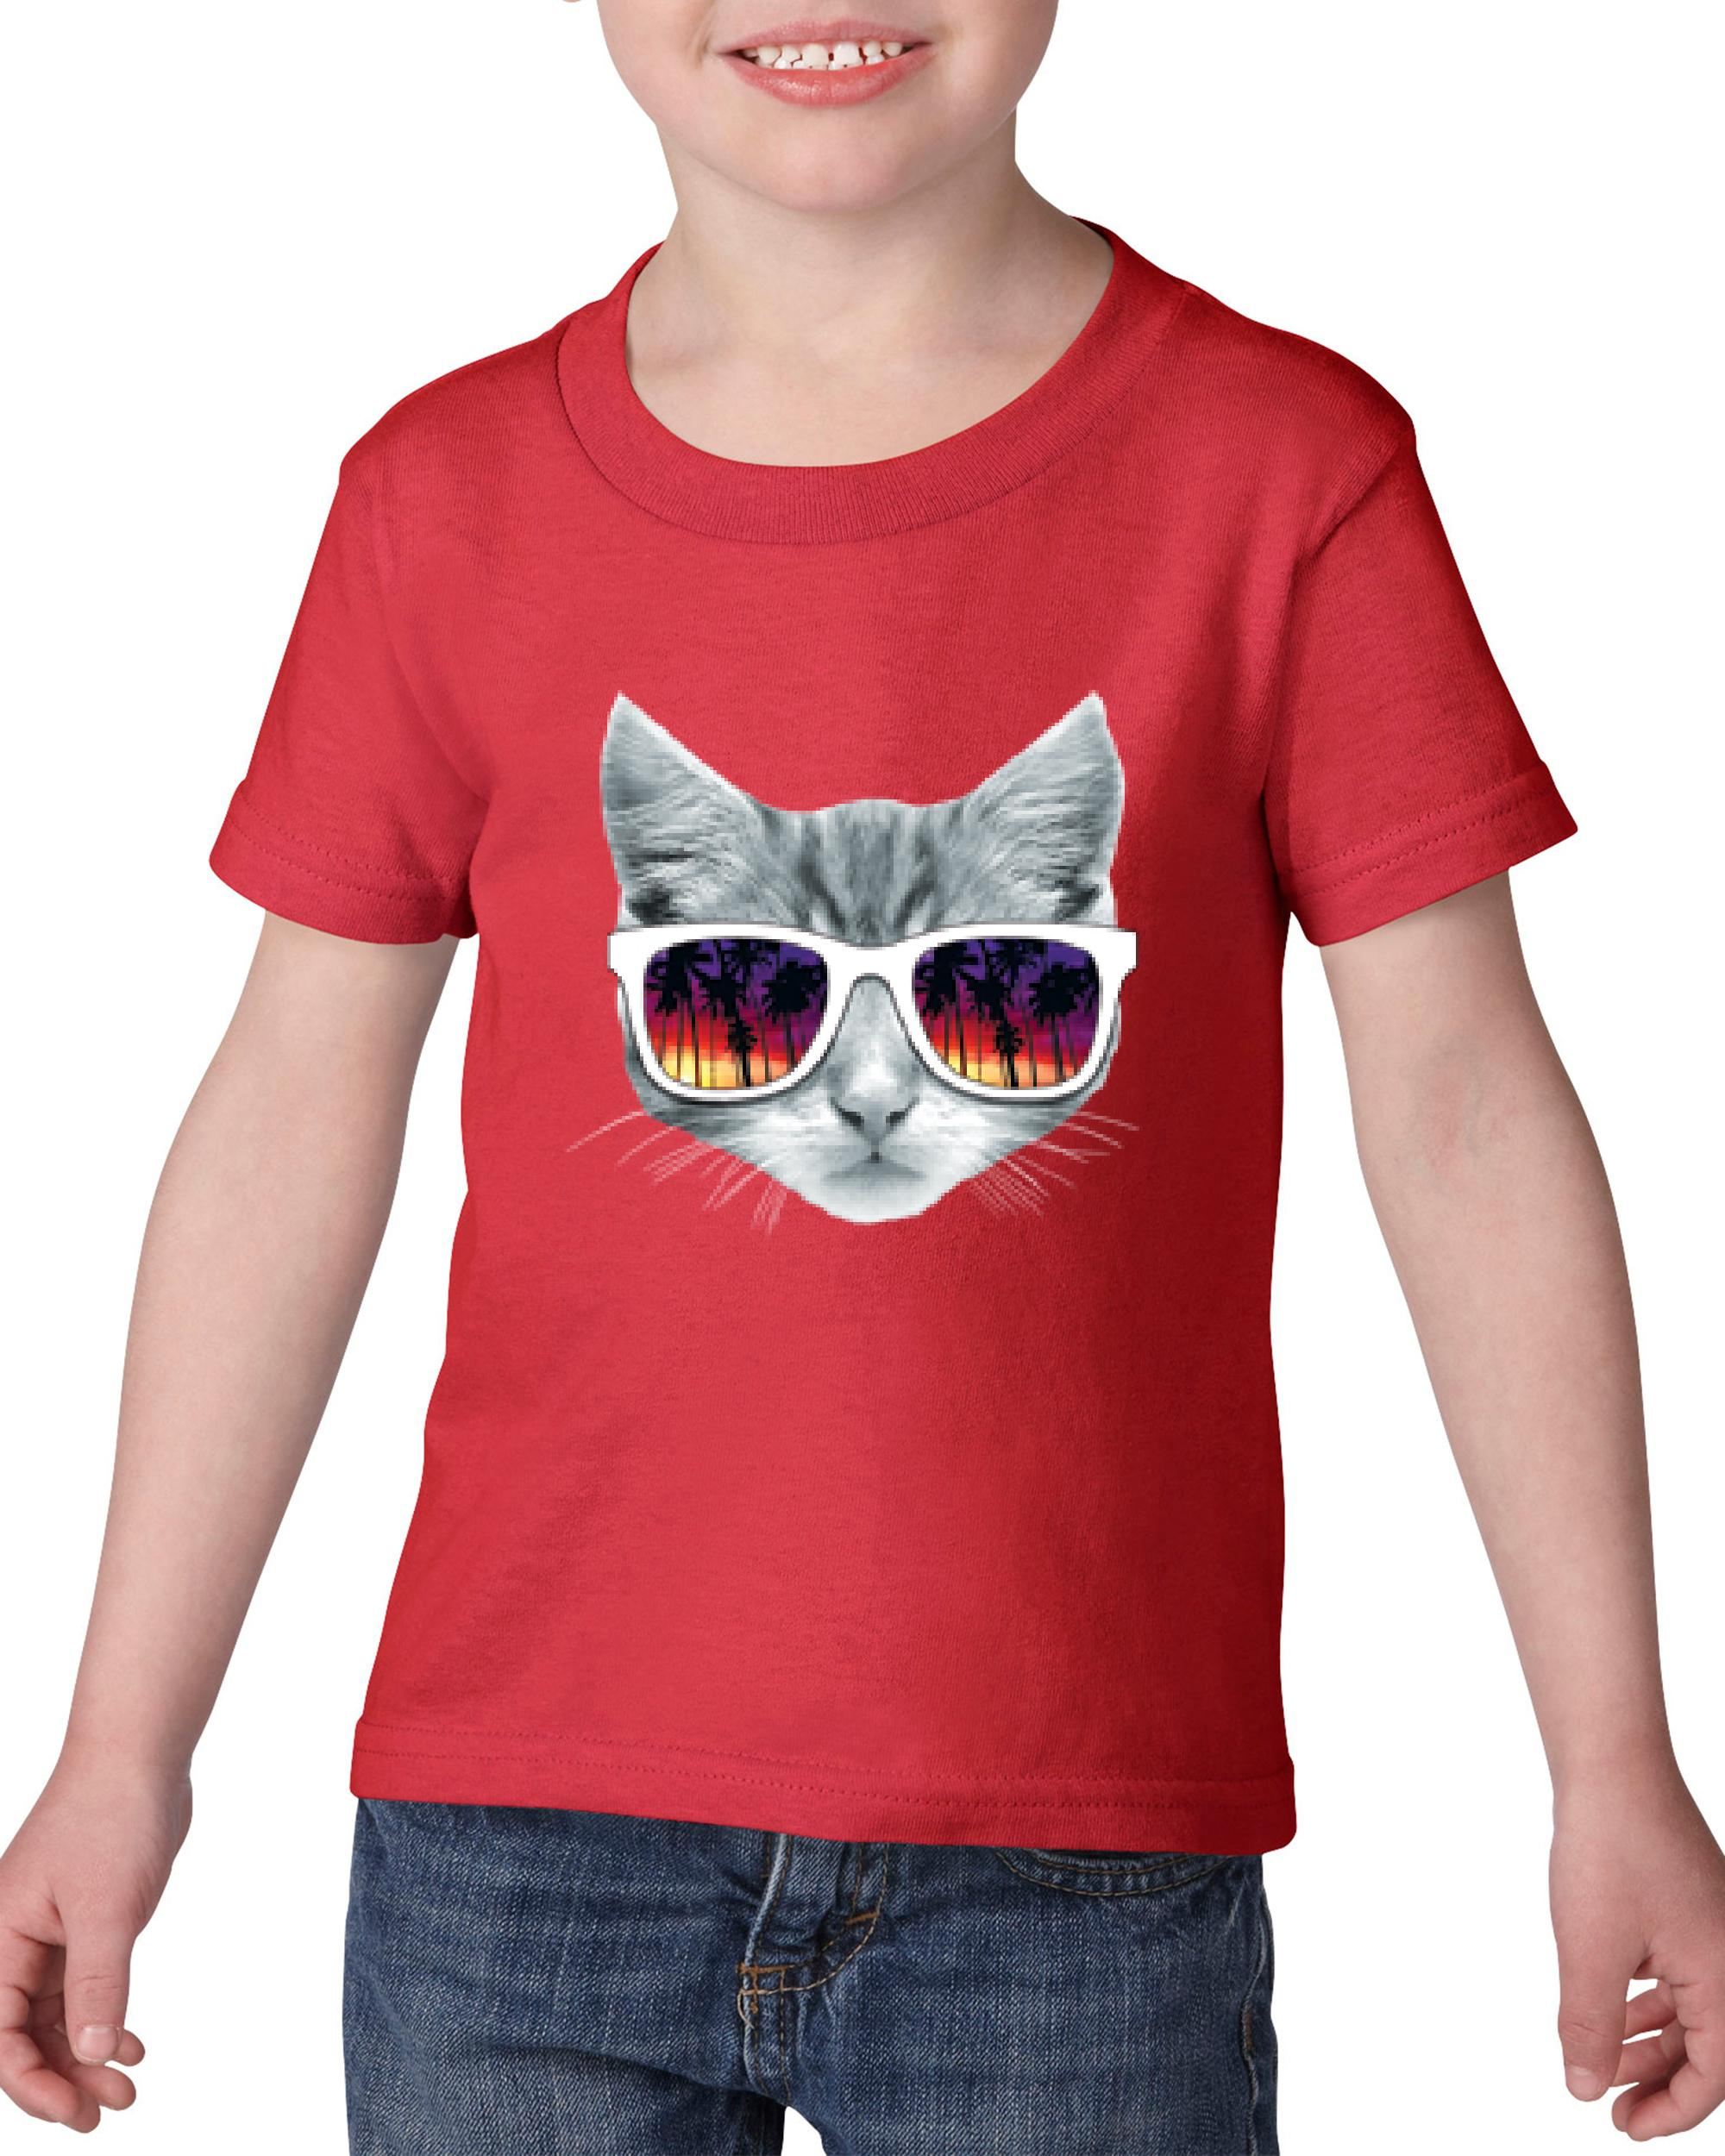 Artix Kitty with Sunglasses Love Pets Dogs Cats Cat Lovers Birthday Gift Heavy Cotton Toddler Kids T-Shirt Tee Clothing